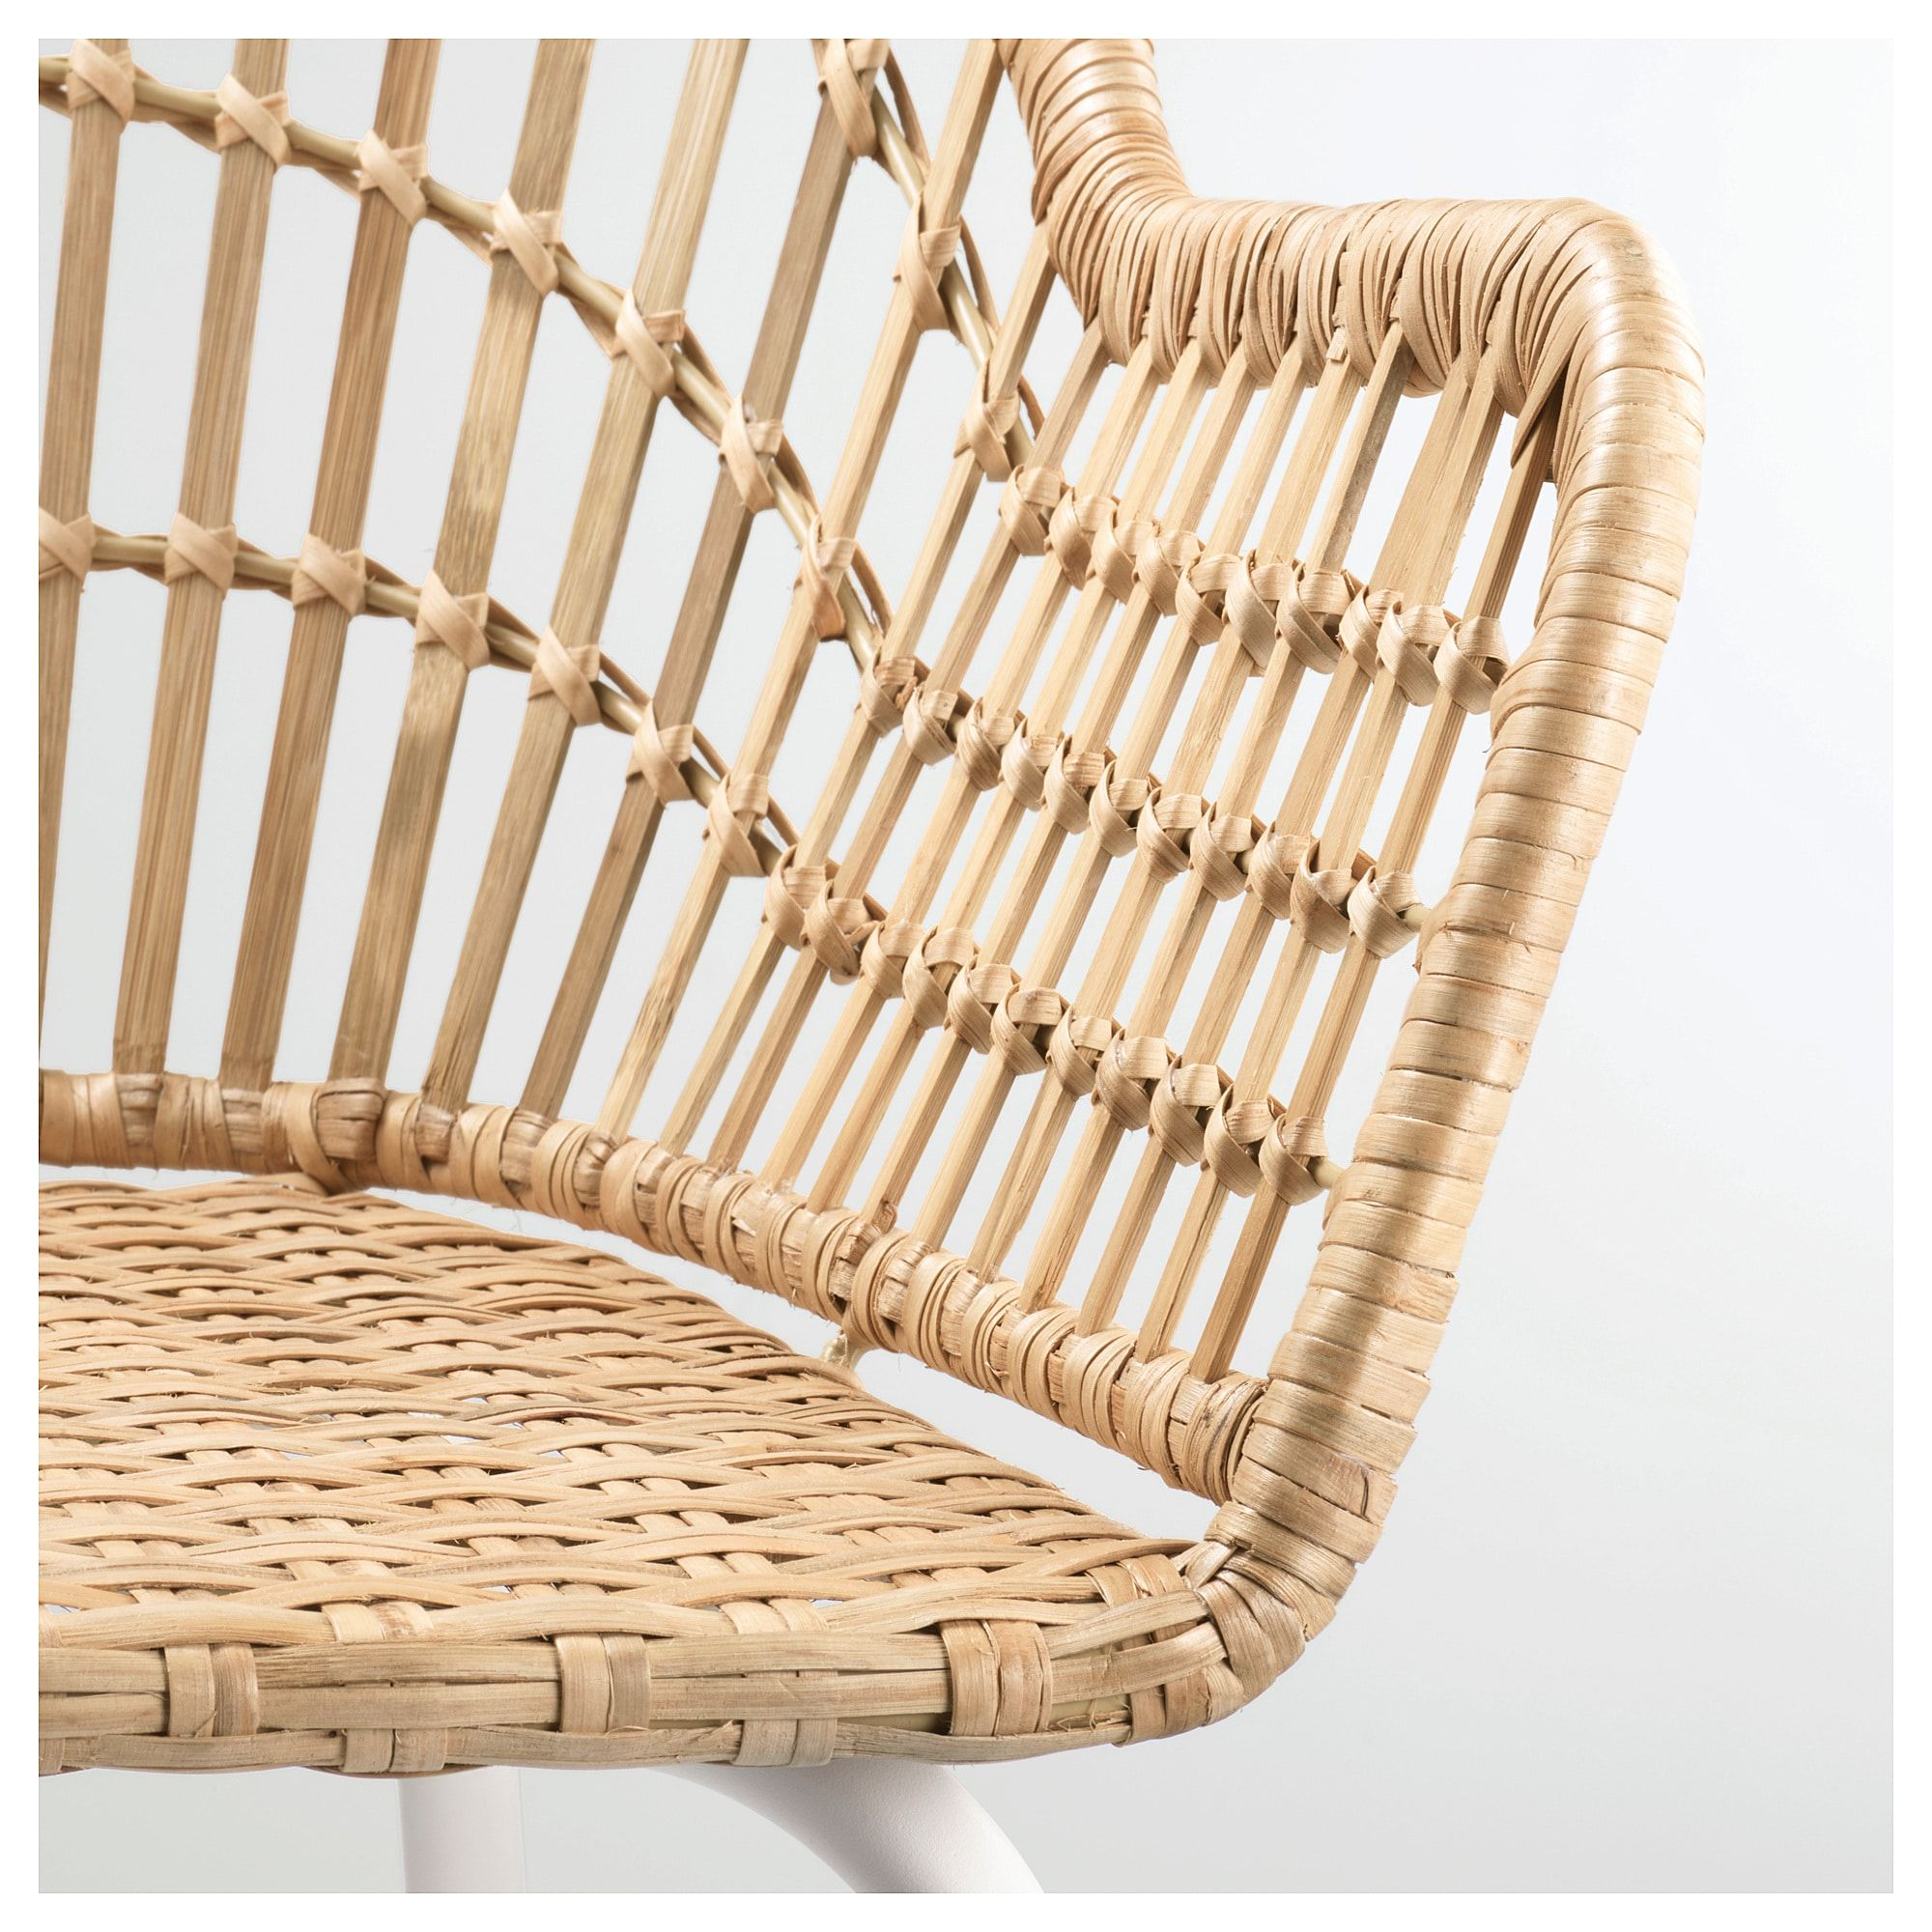 NILSOVE Chair with armrests rattan, white Rattan, Ikea